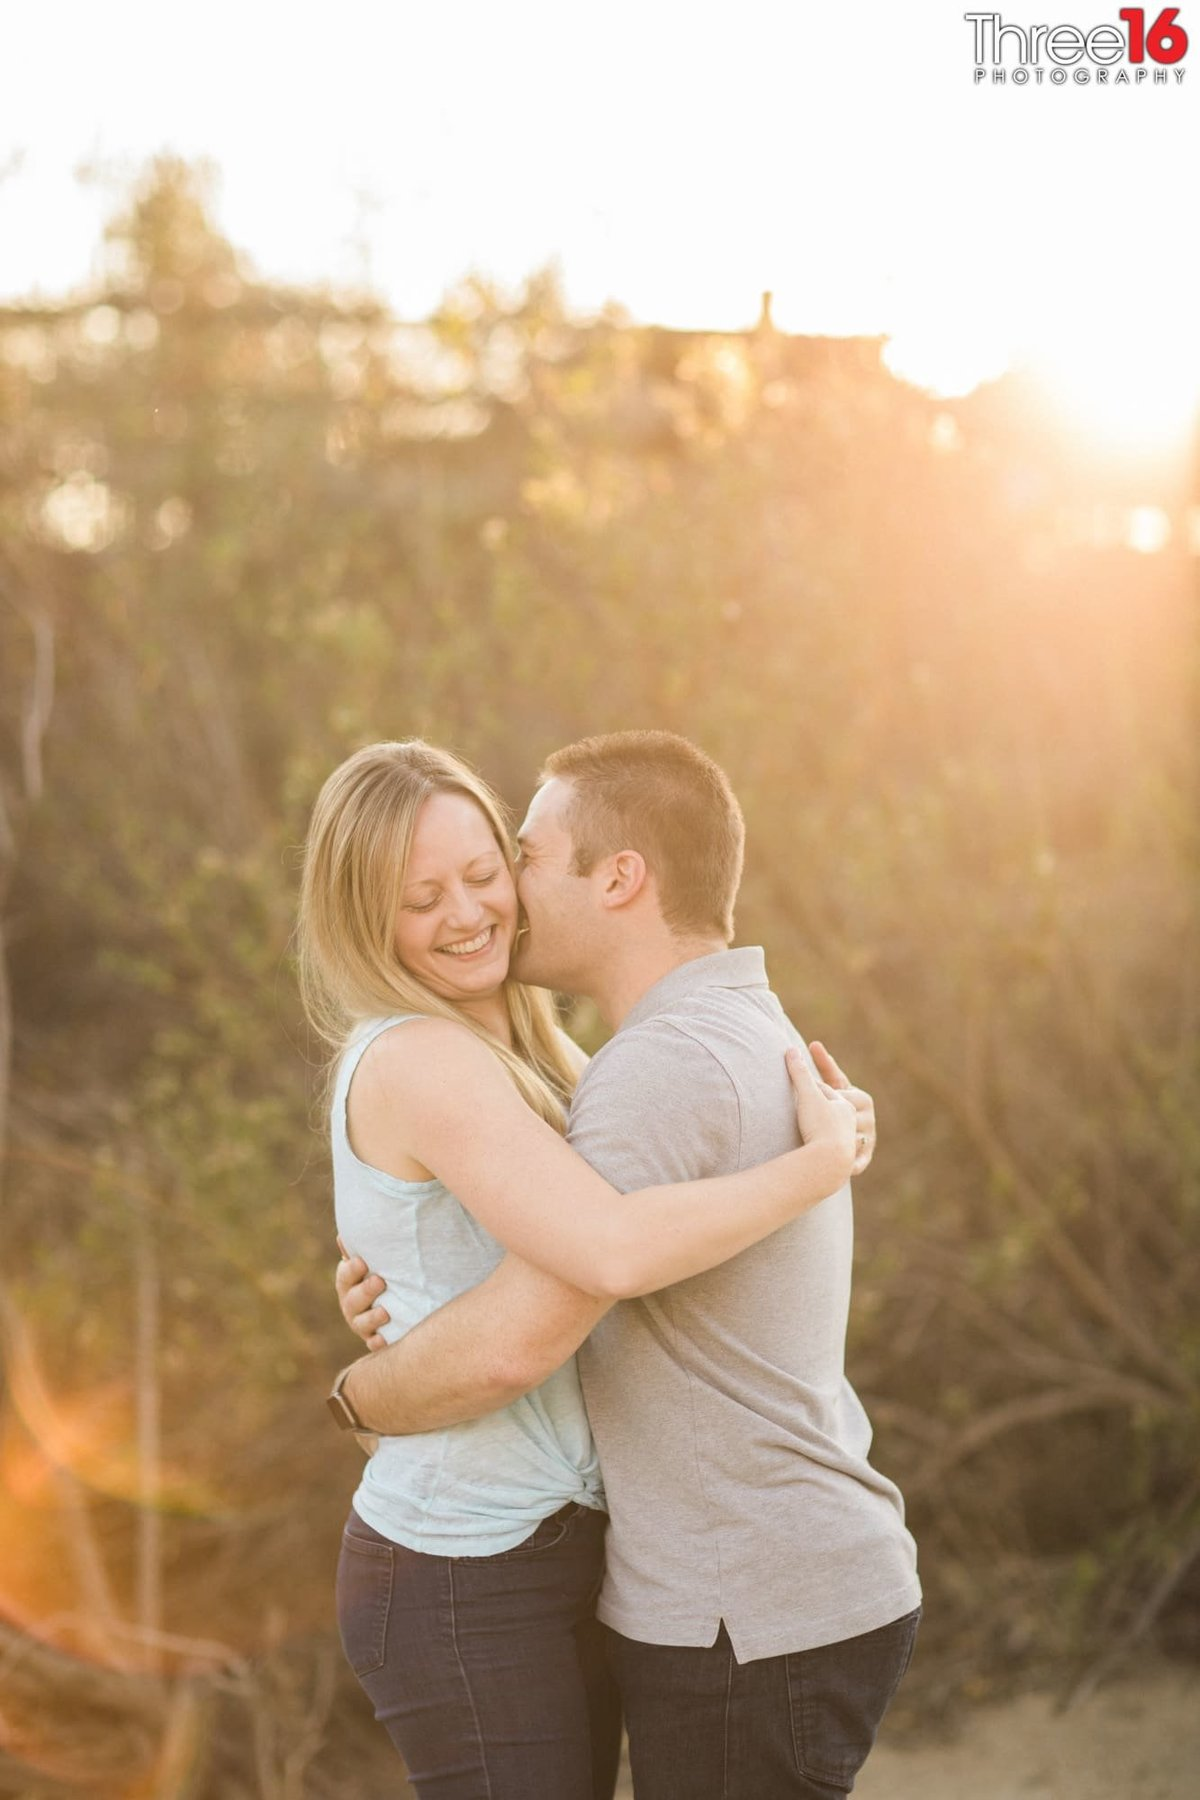 Whiting Ranch Wilderness Park Engagement Photos Trabuco Canyon Orange County Weddings  Photography